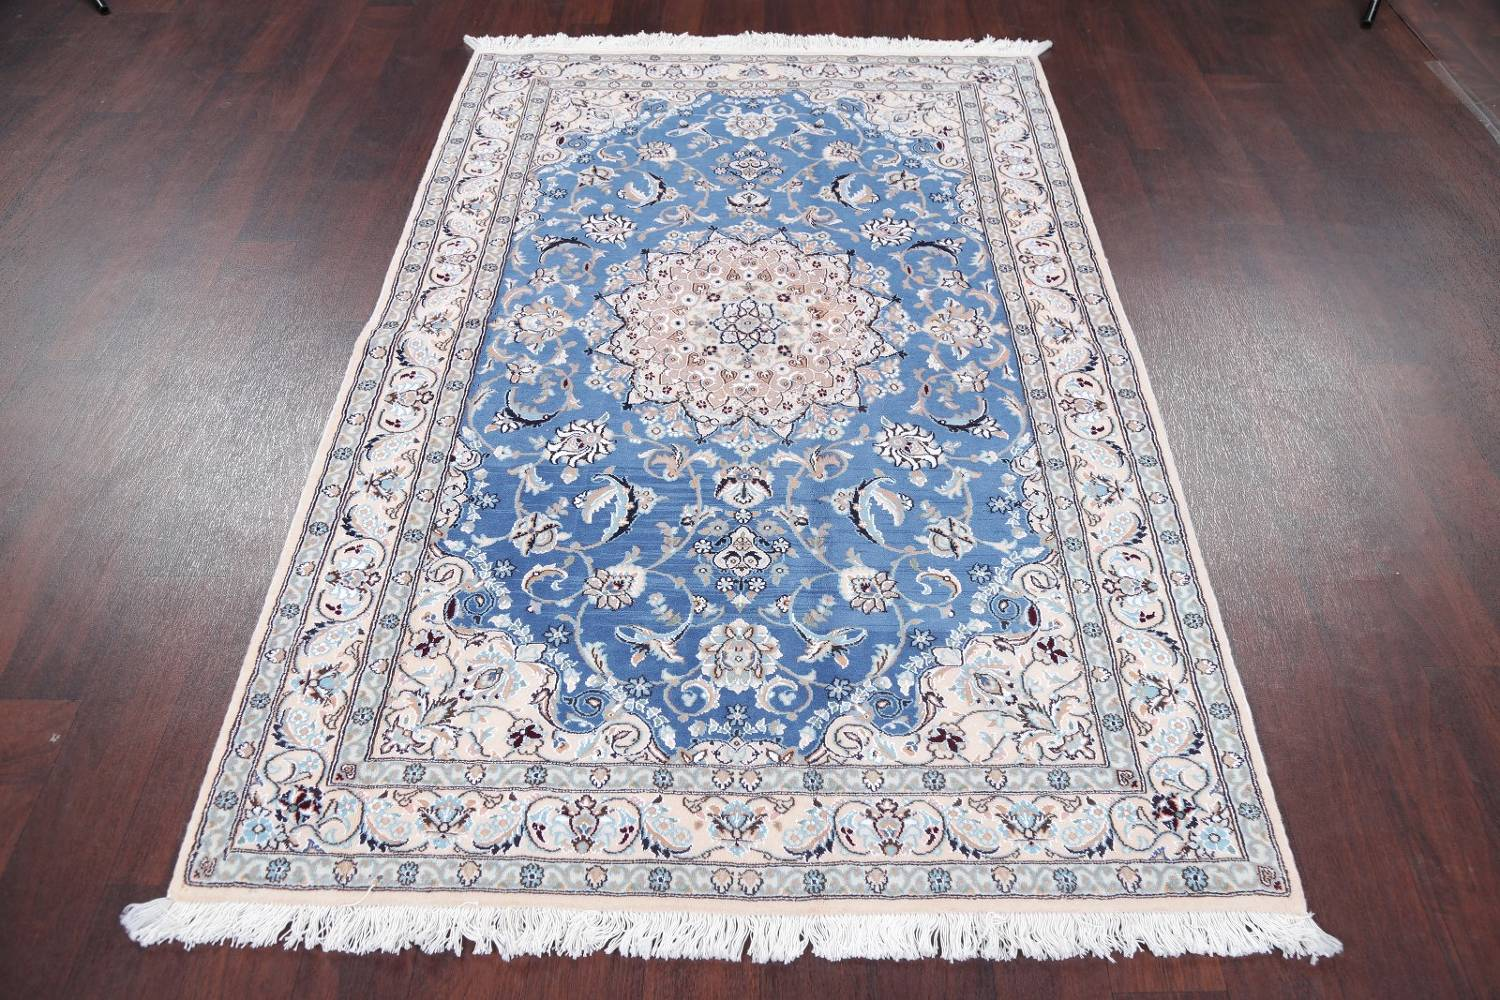 Floral Blue Nain Persian Hand-Knotted 4x7 Wool Silk Area Rug image 14